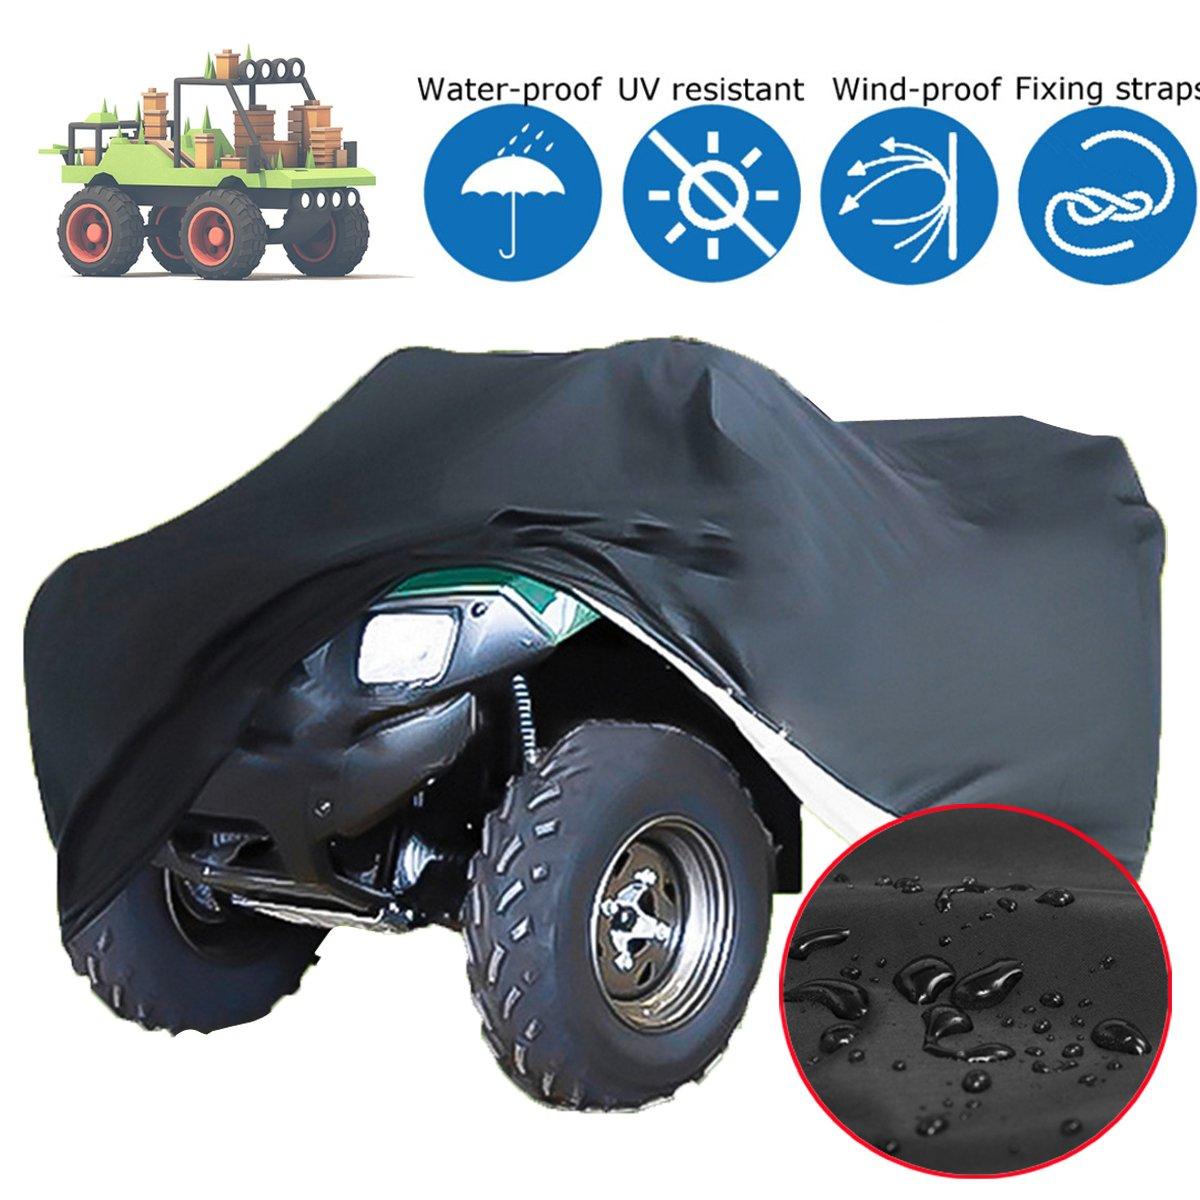 Essort Lawn Mower Cover, 170 x 61 x 117cm Waterproof Polyester Heavy Duty Universal Protection Hood Garage Lawn Tractor Cover for Most Lawn Mowers with Storage Bag, Black Universal